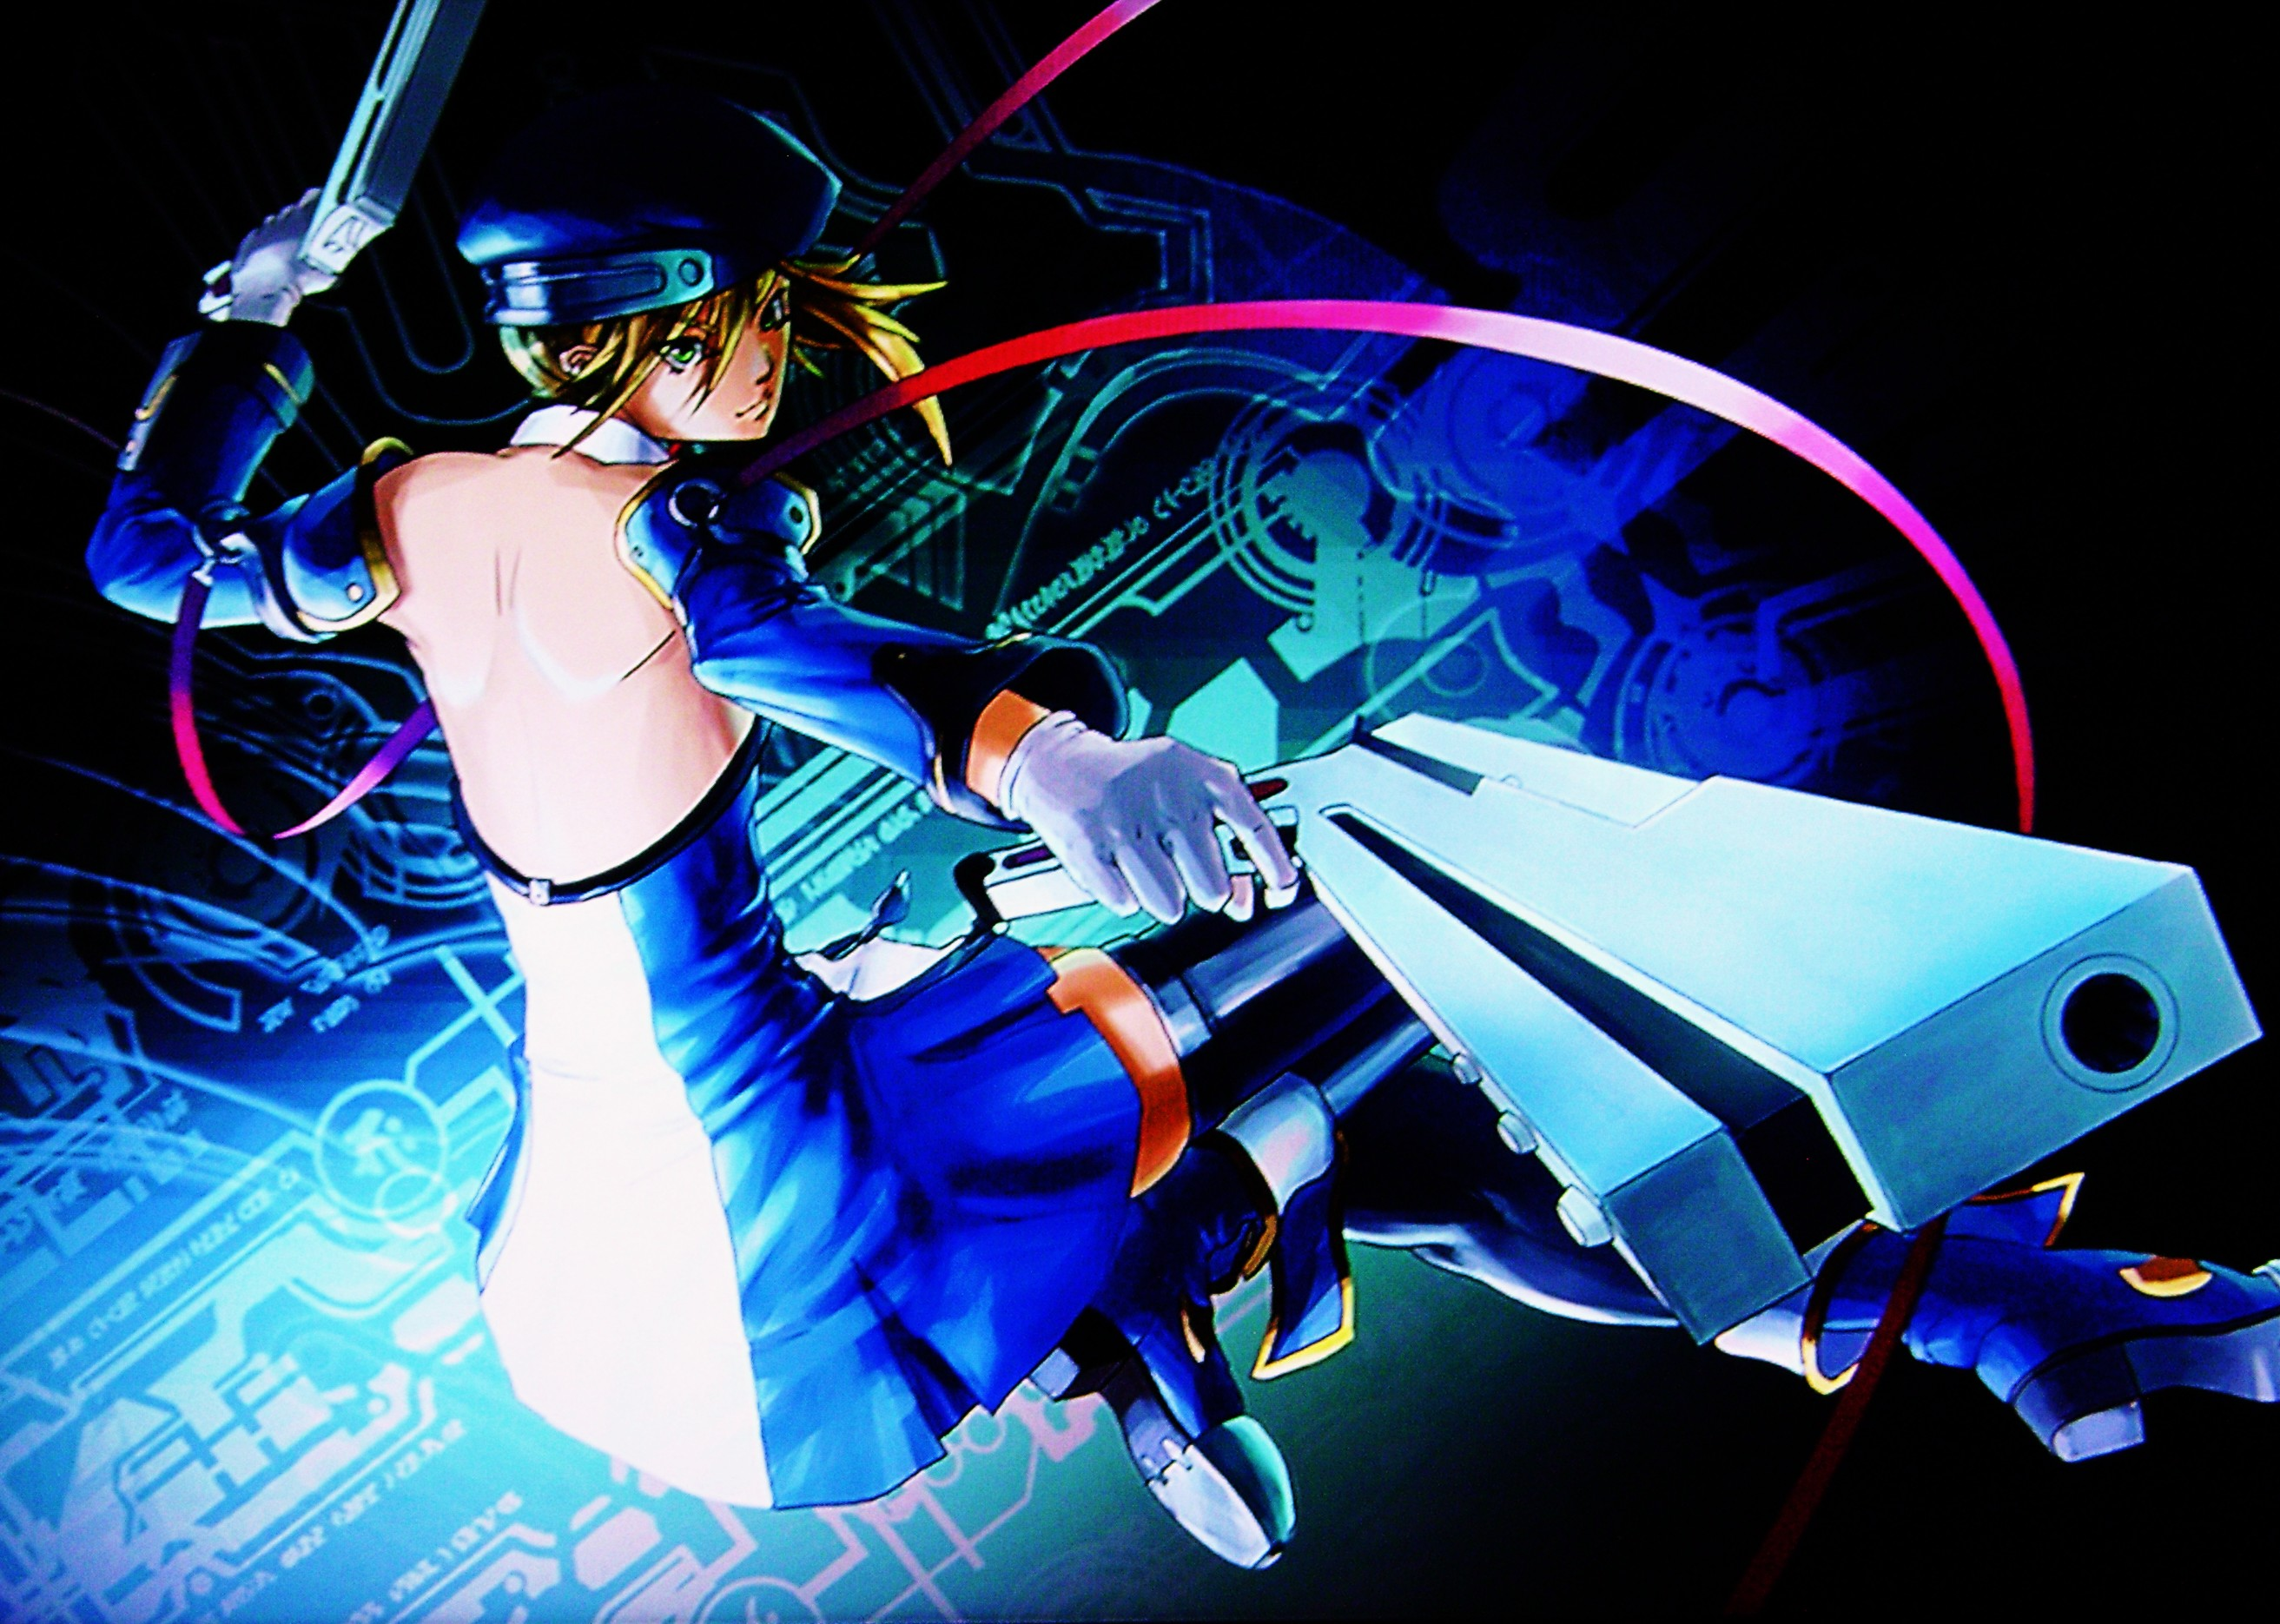 Free Download Blazblue Noel Wallpaper 2625x1870 Blazblue Noel